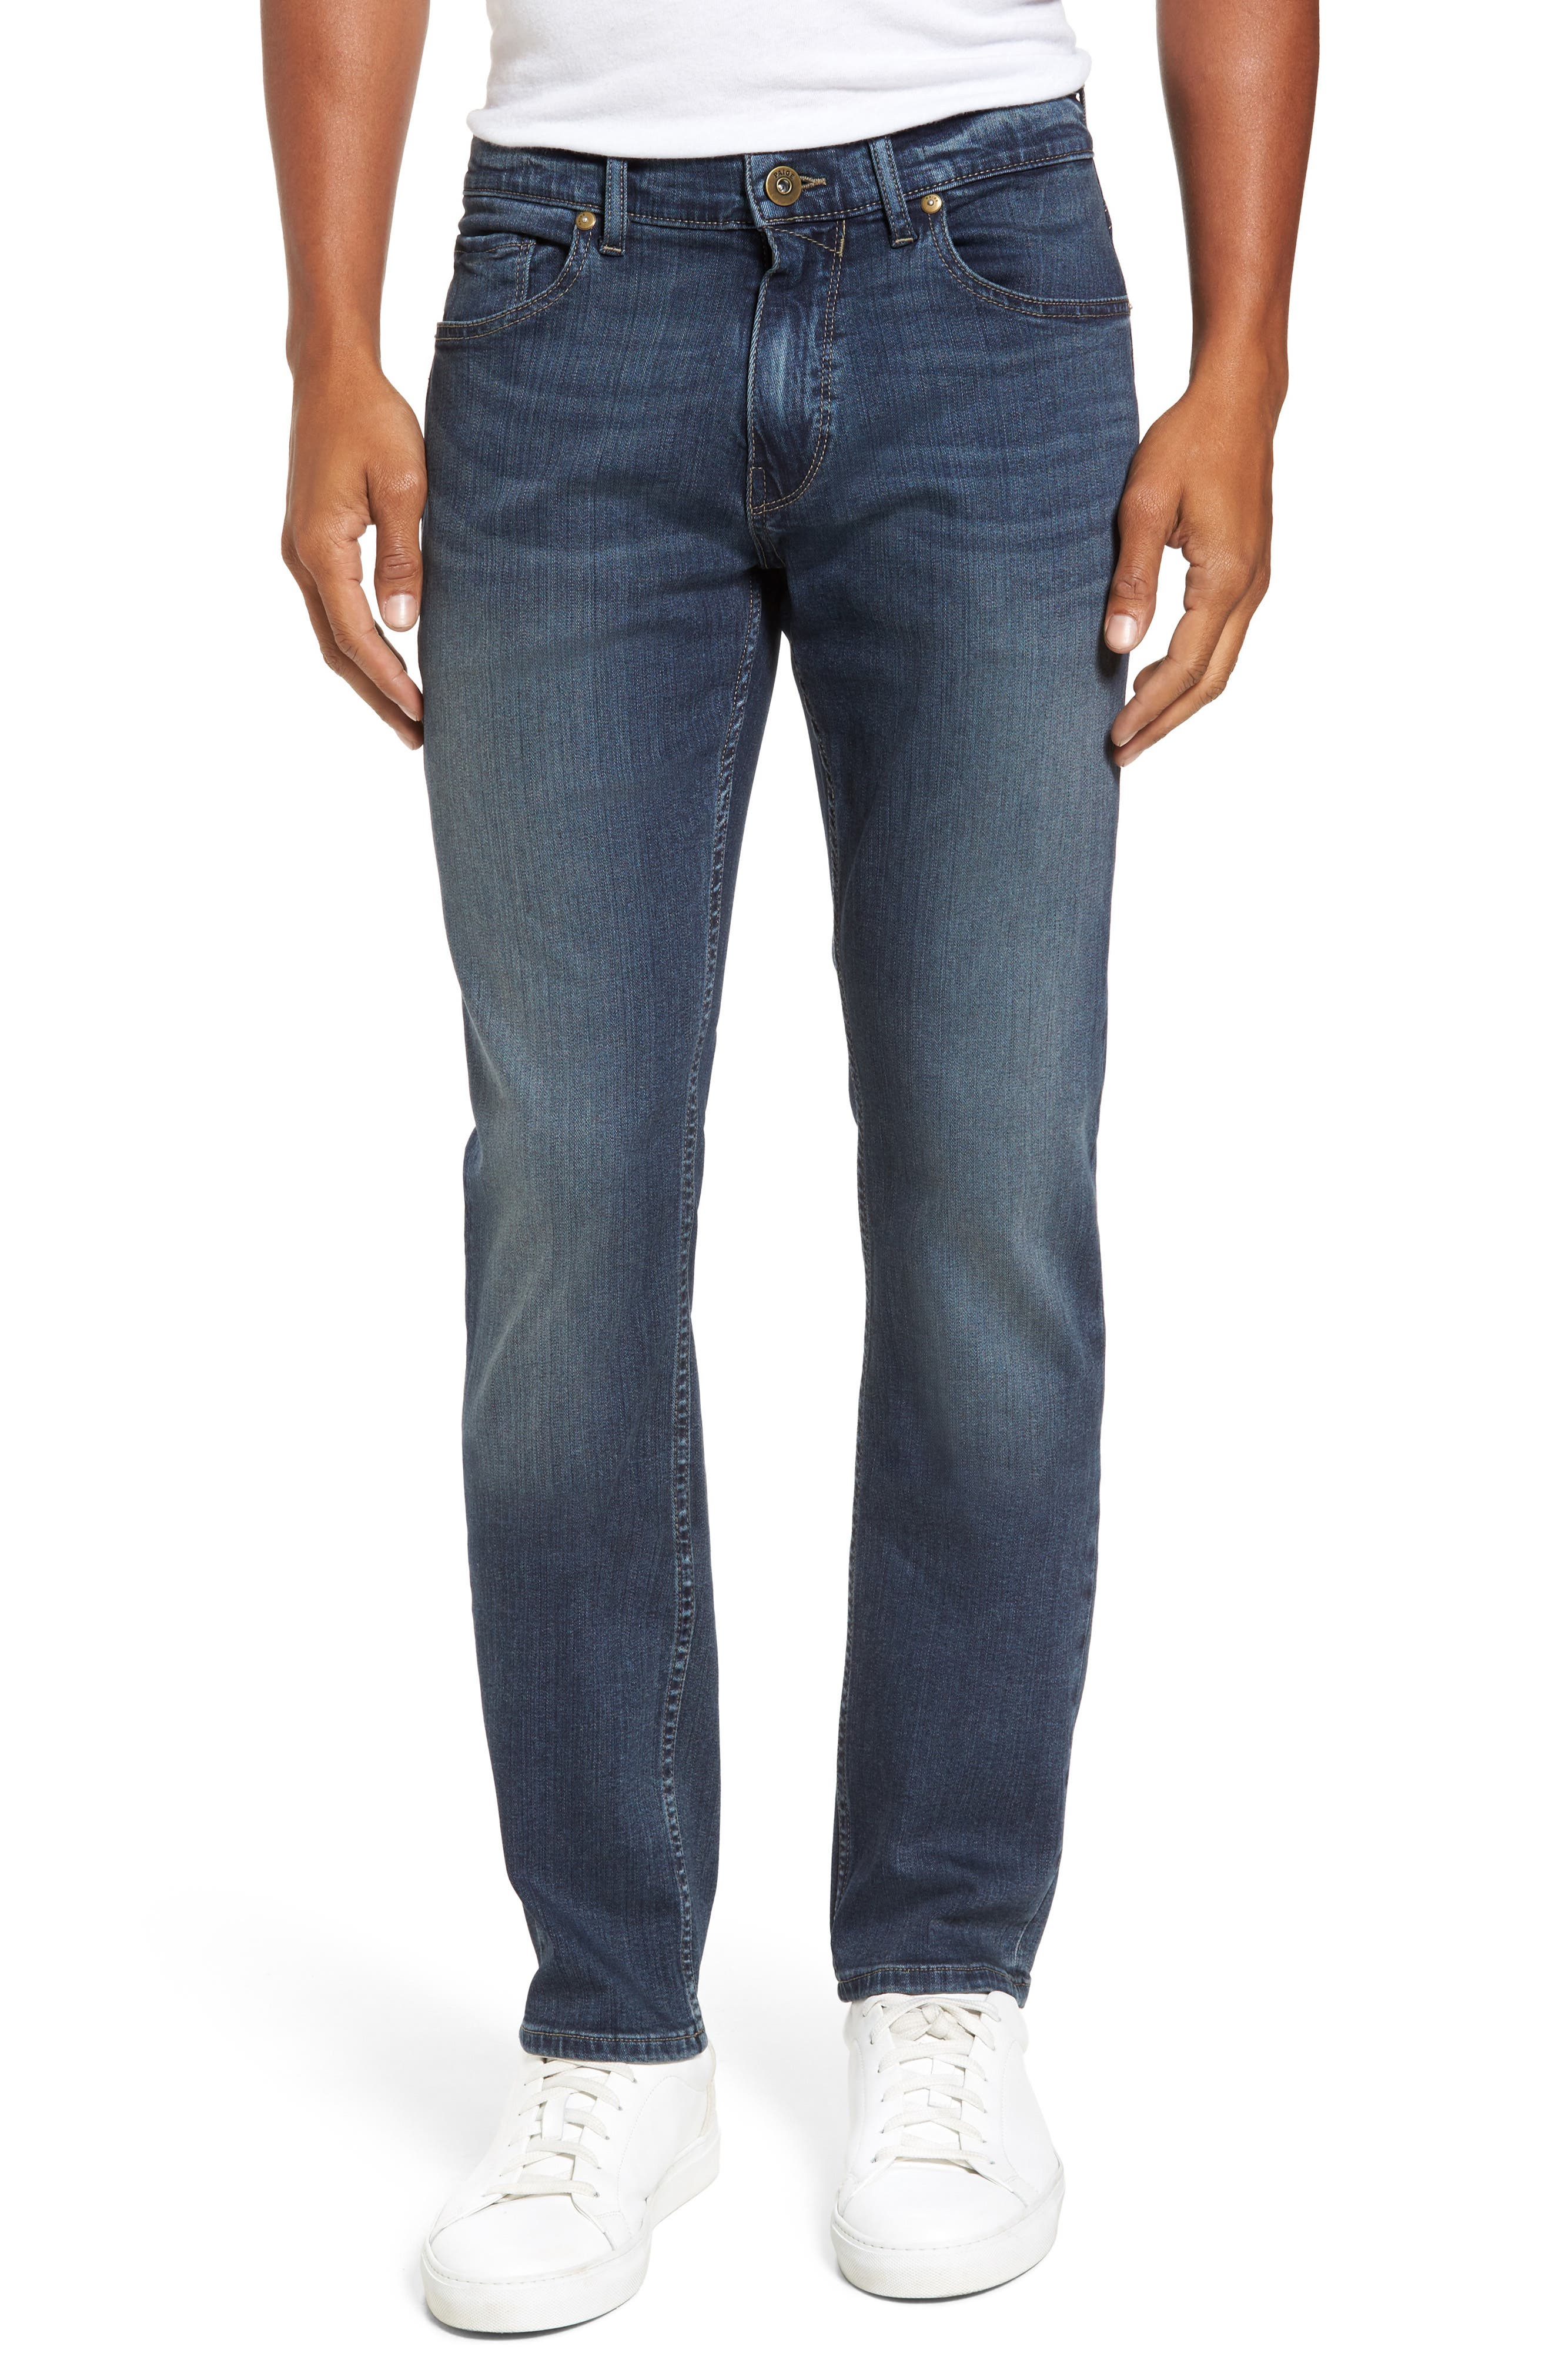 Transcend - Federal Slim Straight Leg Jeans,                         Main,                         color, Briggs